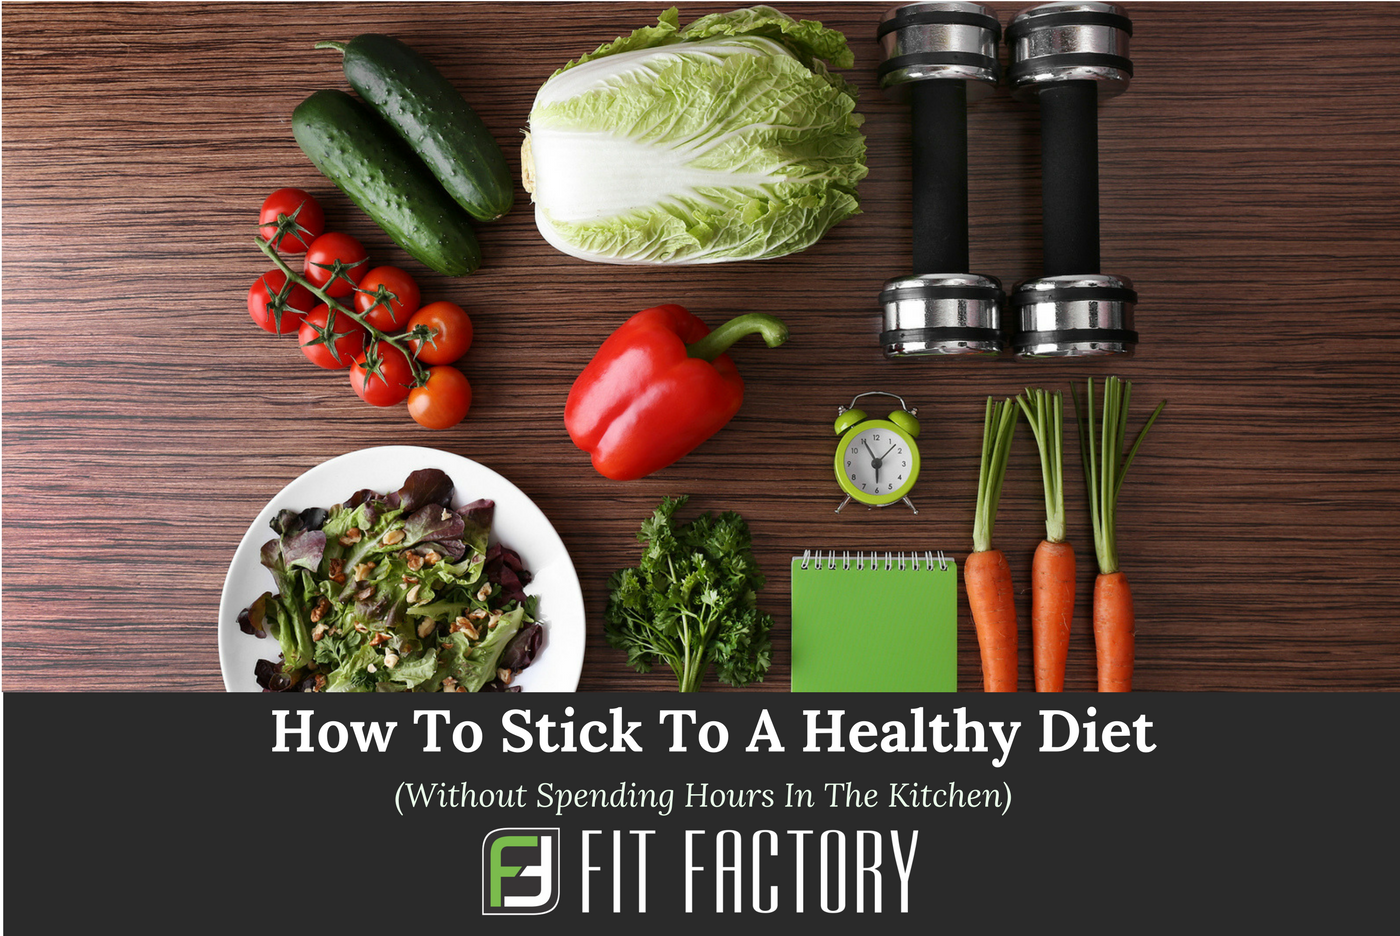 How To Stick to a Healthy Diet (Without Spending Hours in the Kitchen)